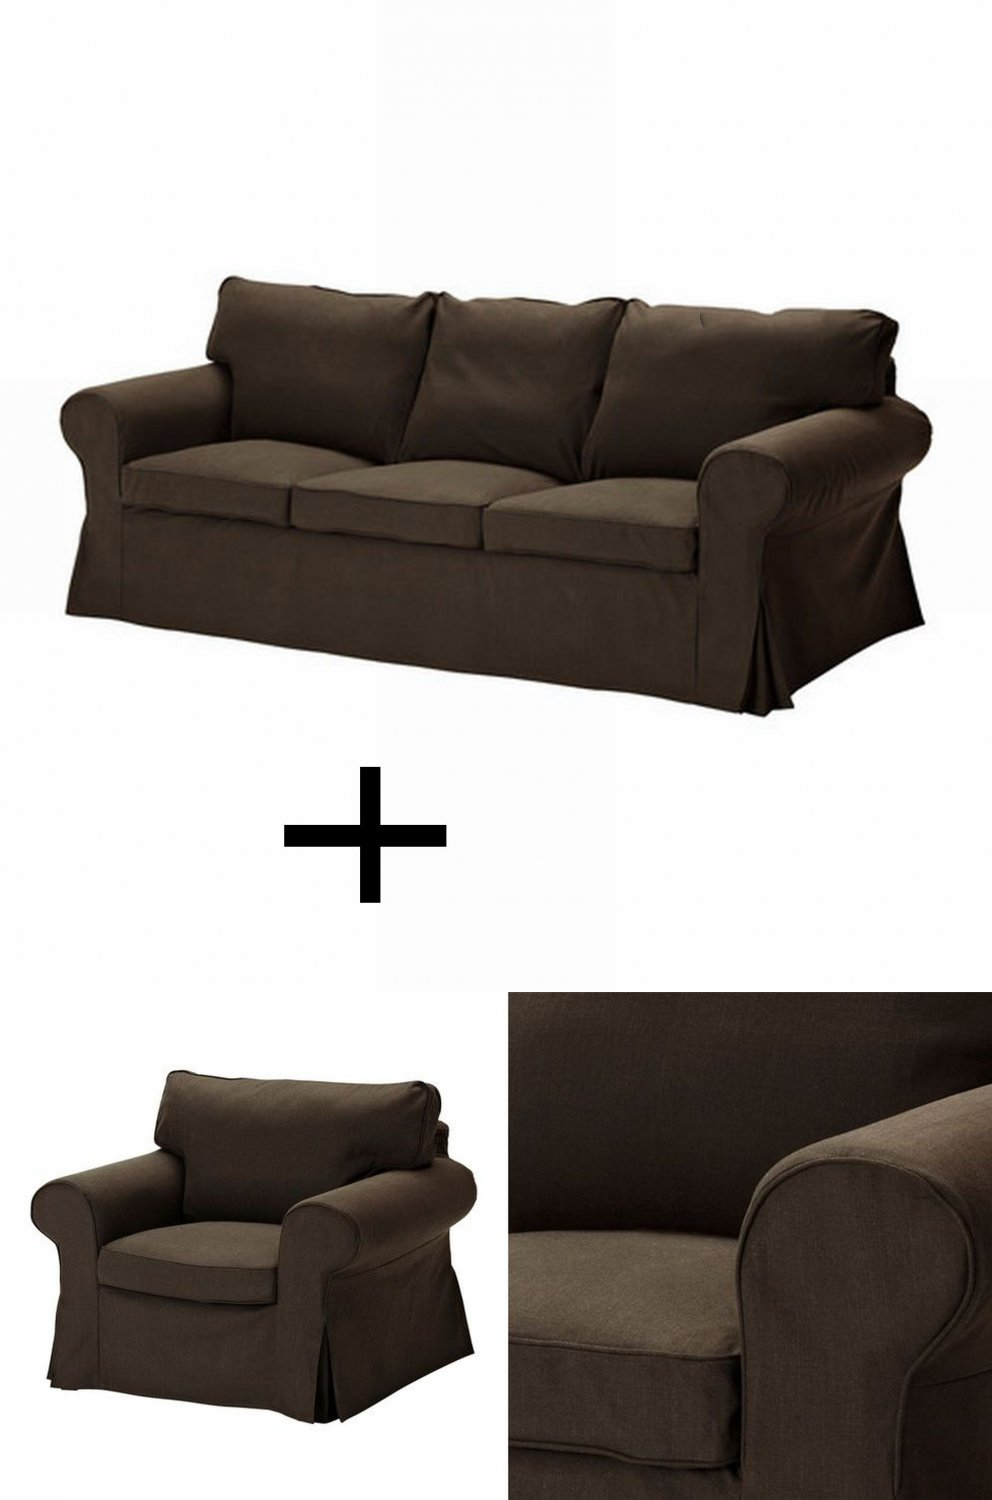 ikea ektorp 3 seat sofa and armchair slipcover set covers. Black Bedroom Furniture Sets. Home Design Ideas